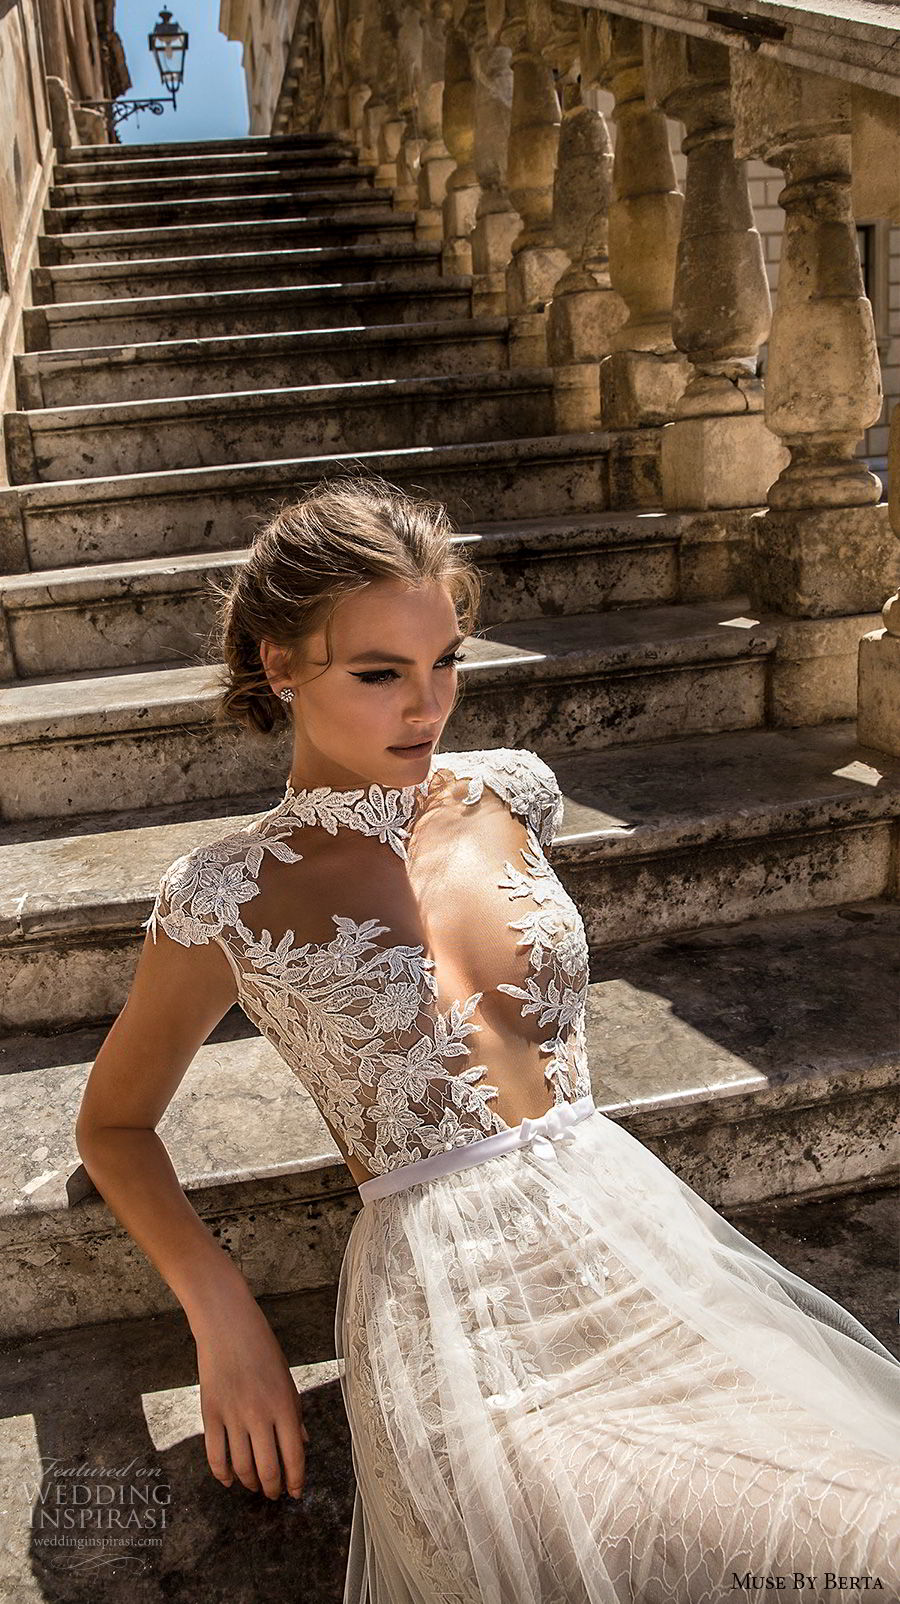 muse-berta-2018-bridal-cap-sleeves-high-neck-deep-plunging-sweetheart-neckline-heavily-embellished-bodice-tulle-skirt-sexy-romantic-a-line-wedding-dress-keyhole-back-cha